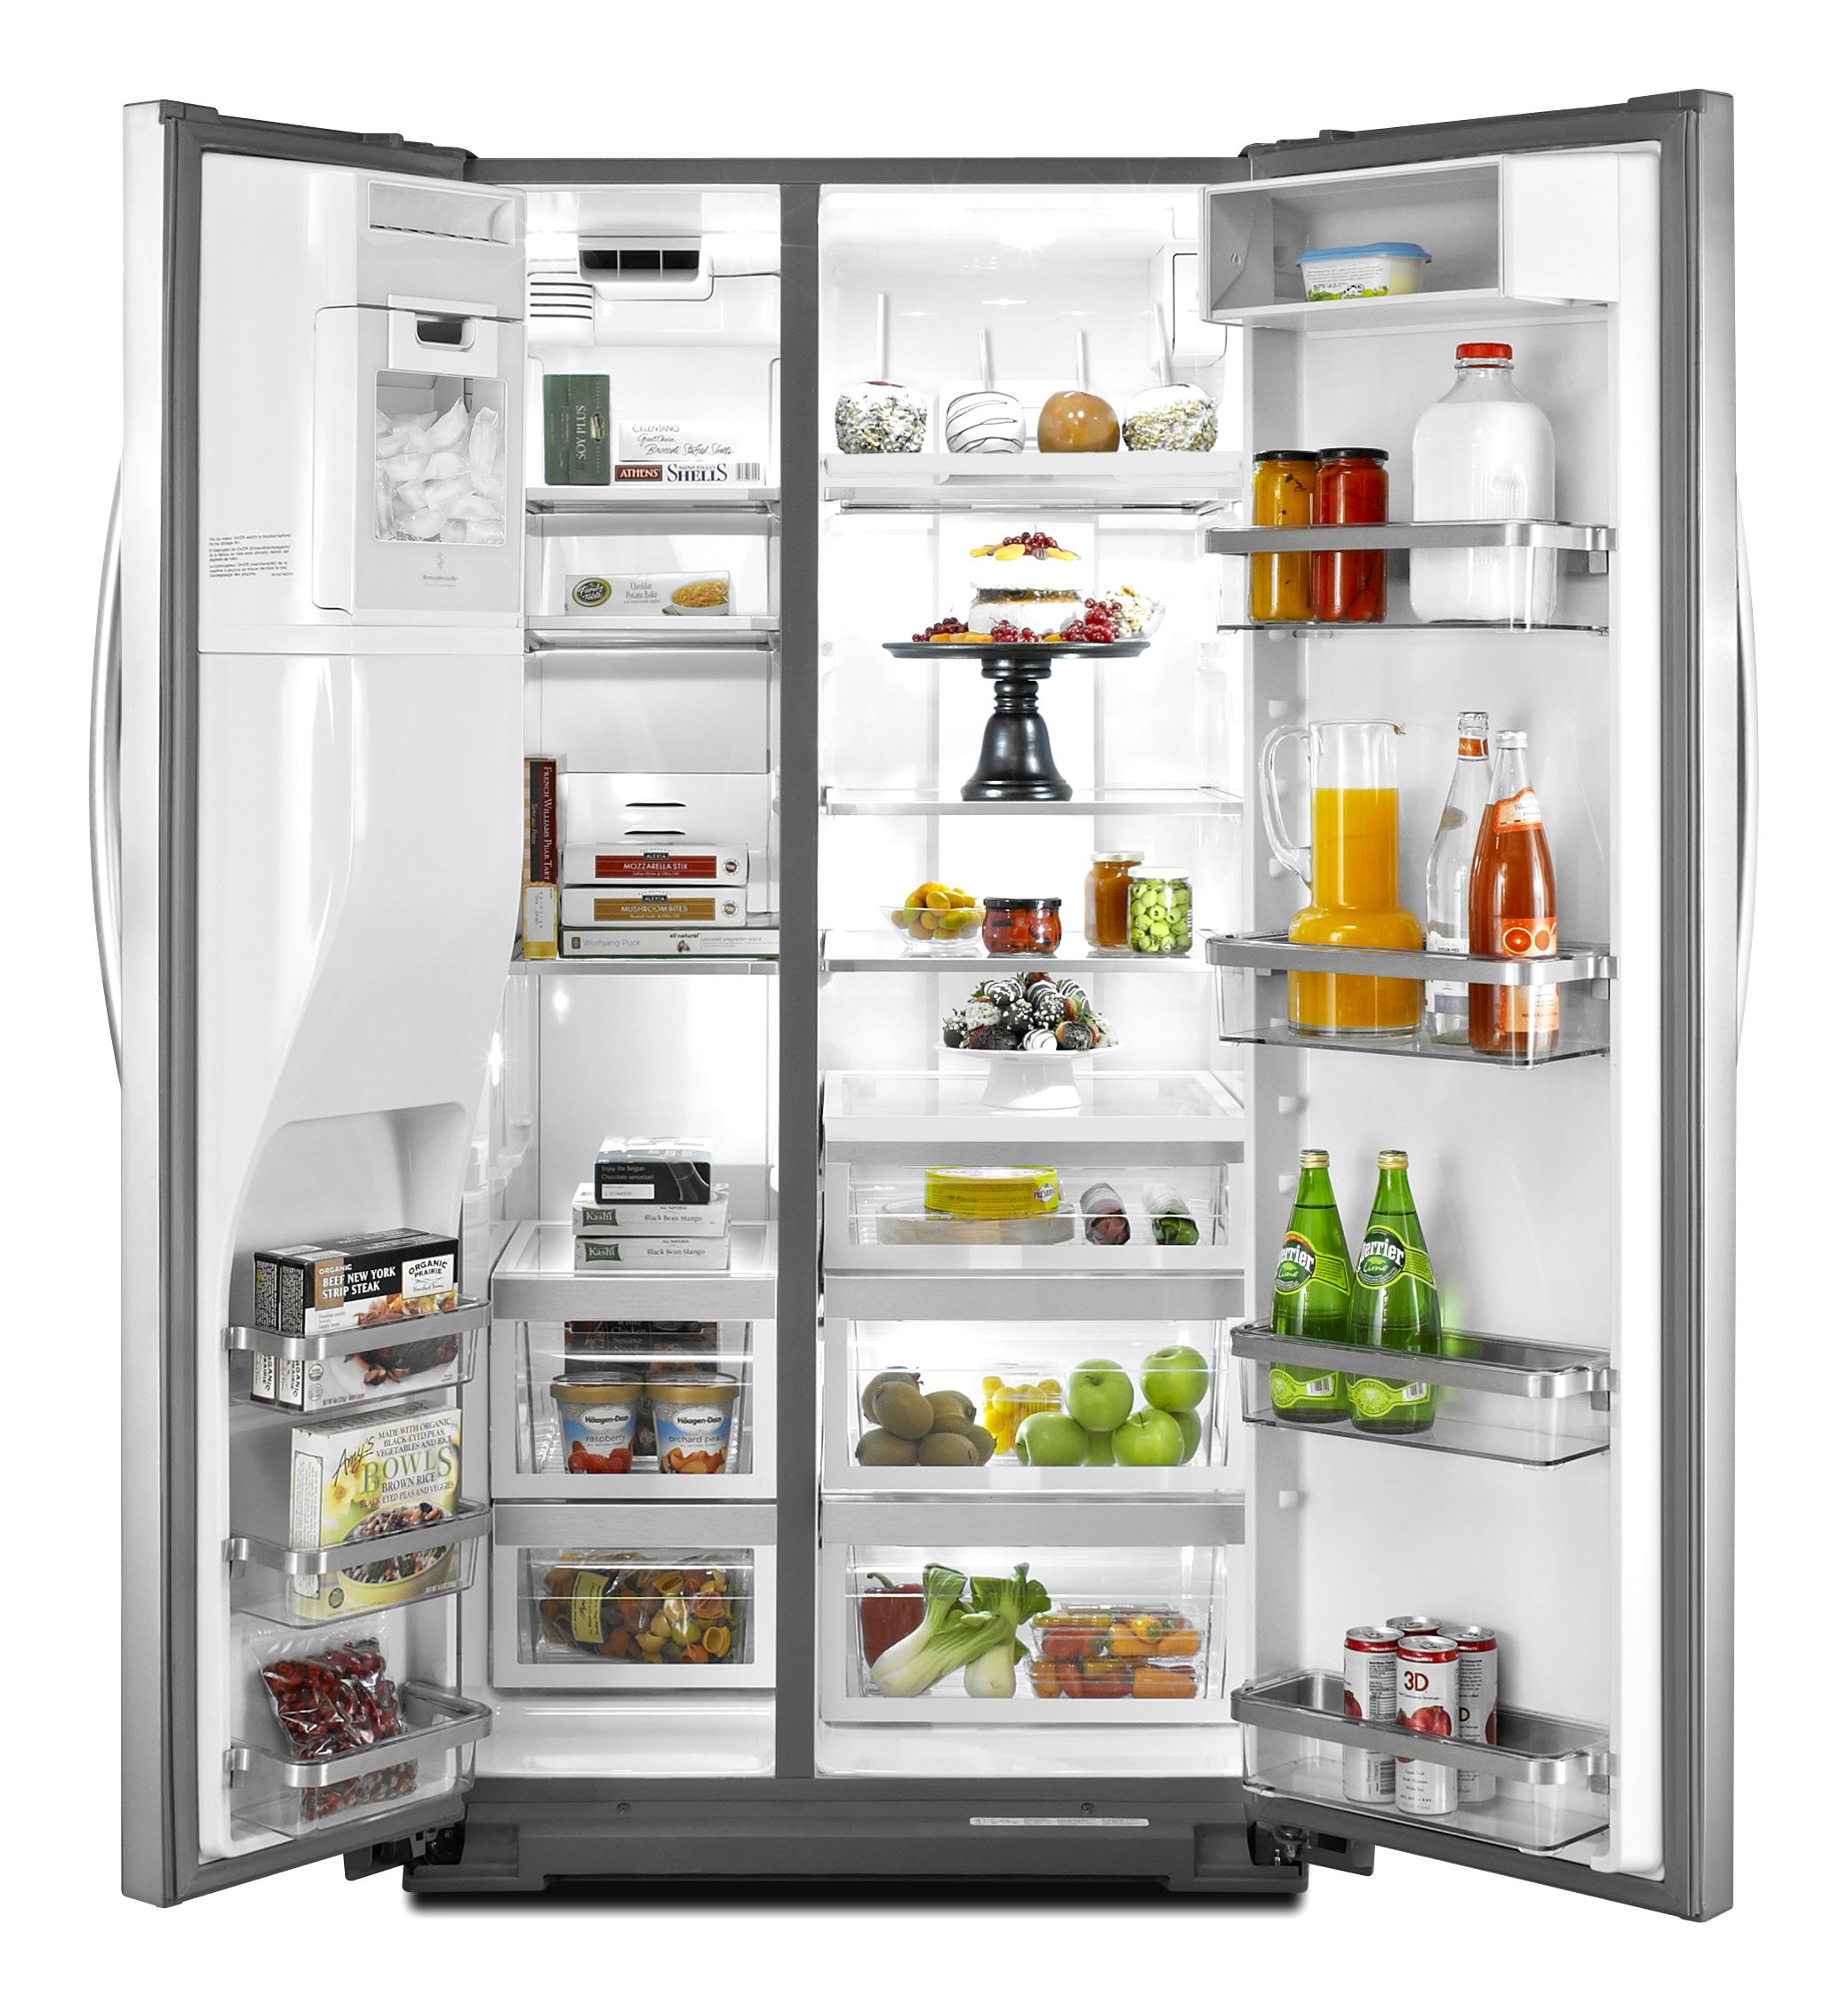 KitchenAid 26.4 cu. ft. Side-by-Side Refrigerator - Monochromatic Stainless Steel